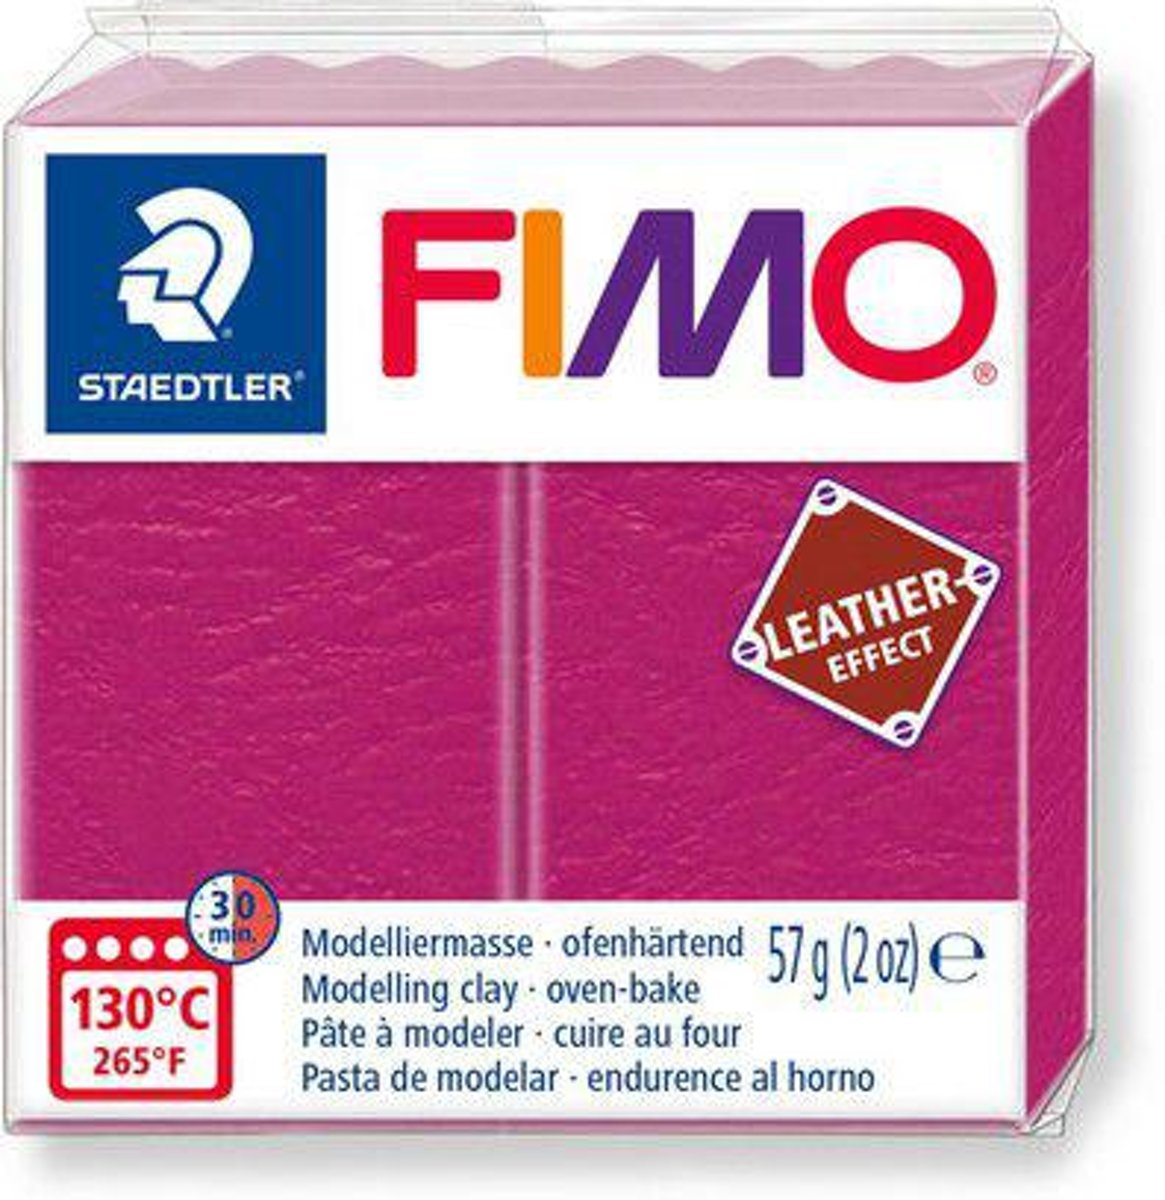 Fimo Effect leather 57 g bes 8010-229